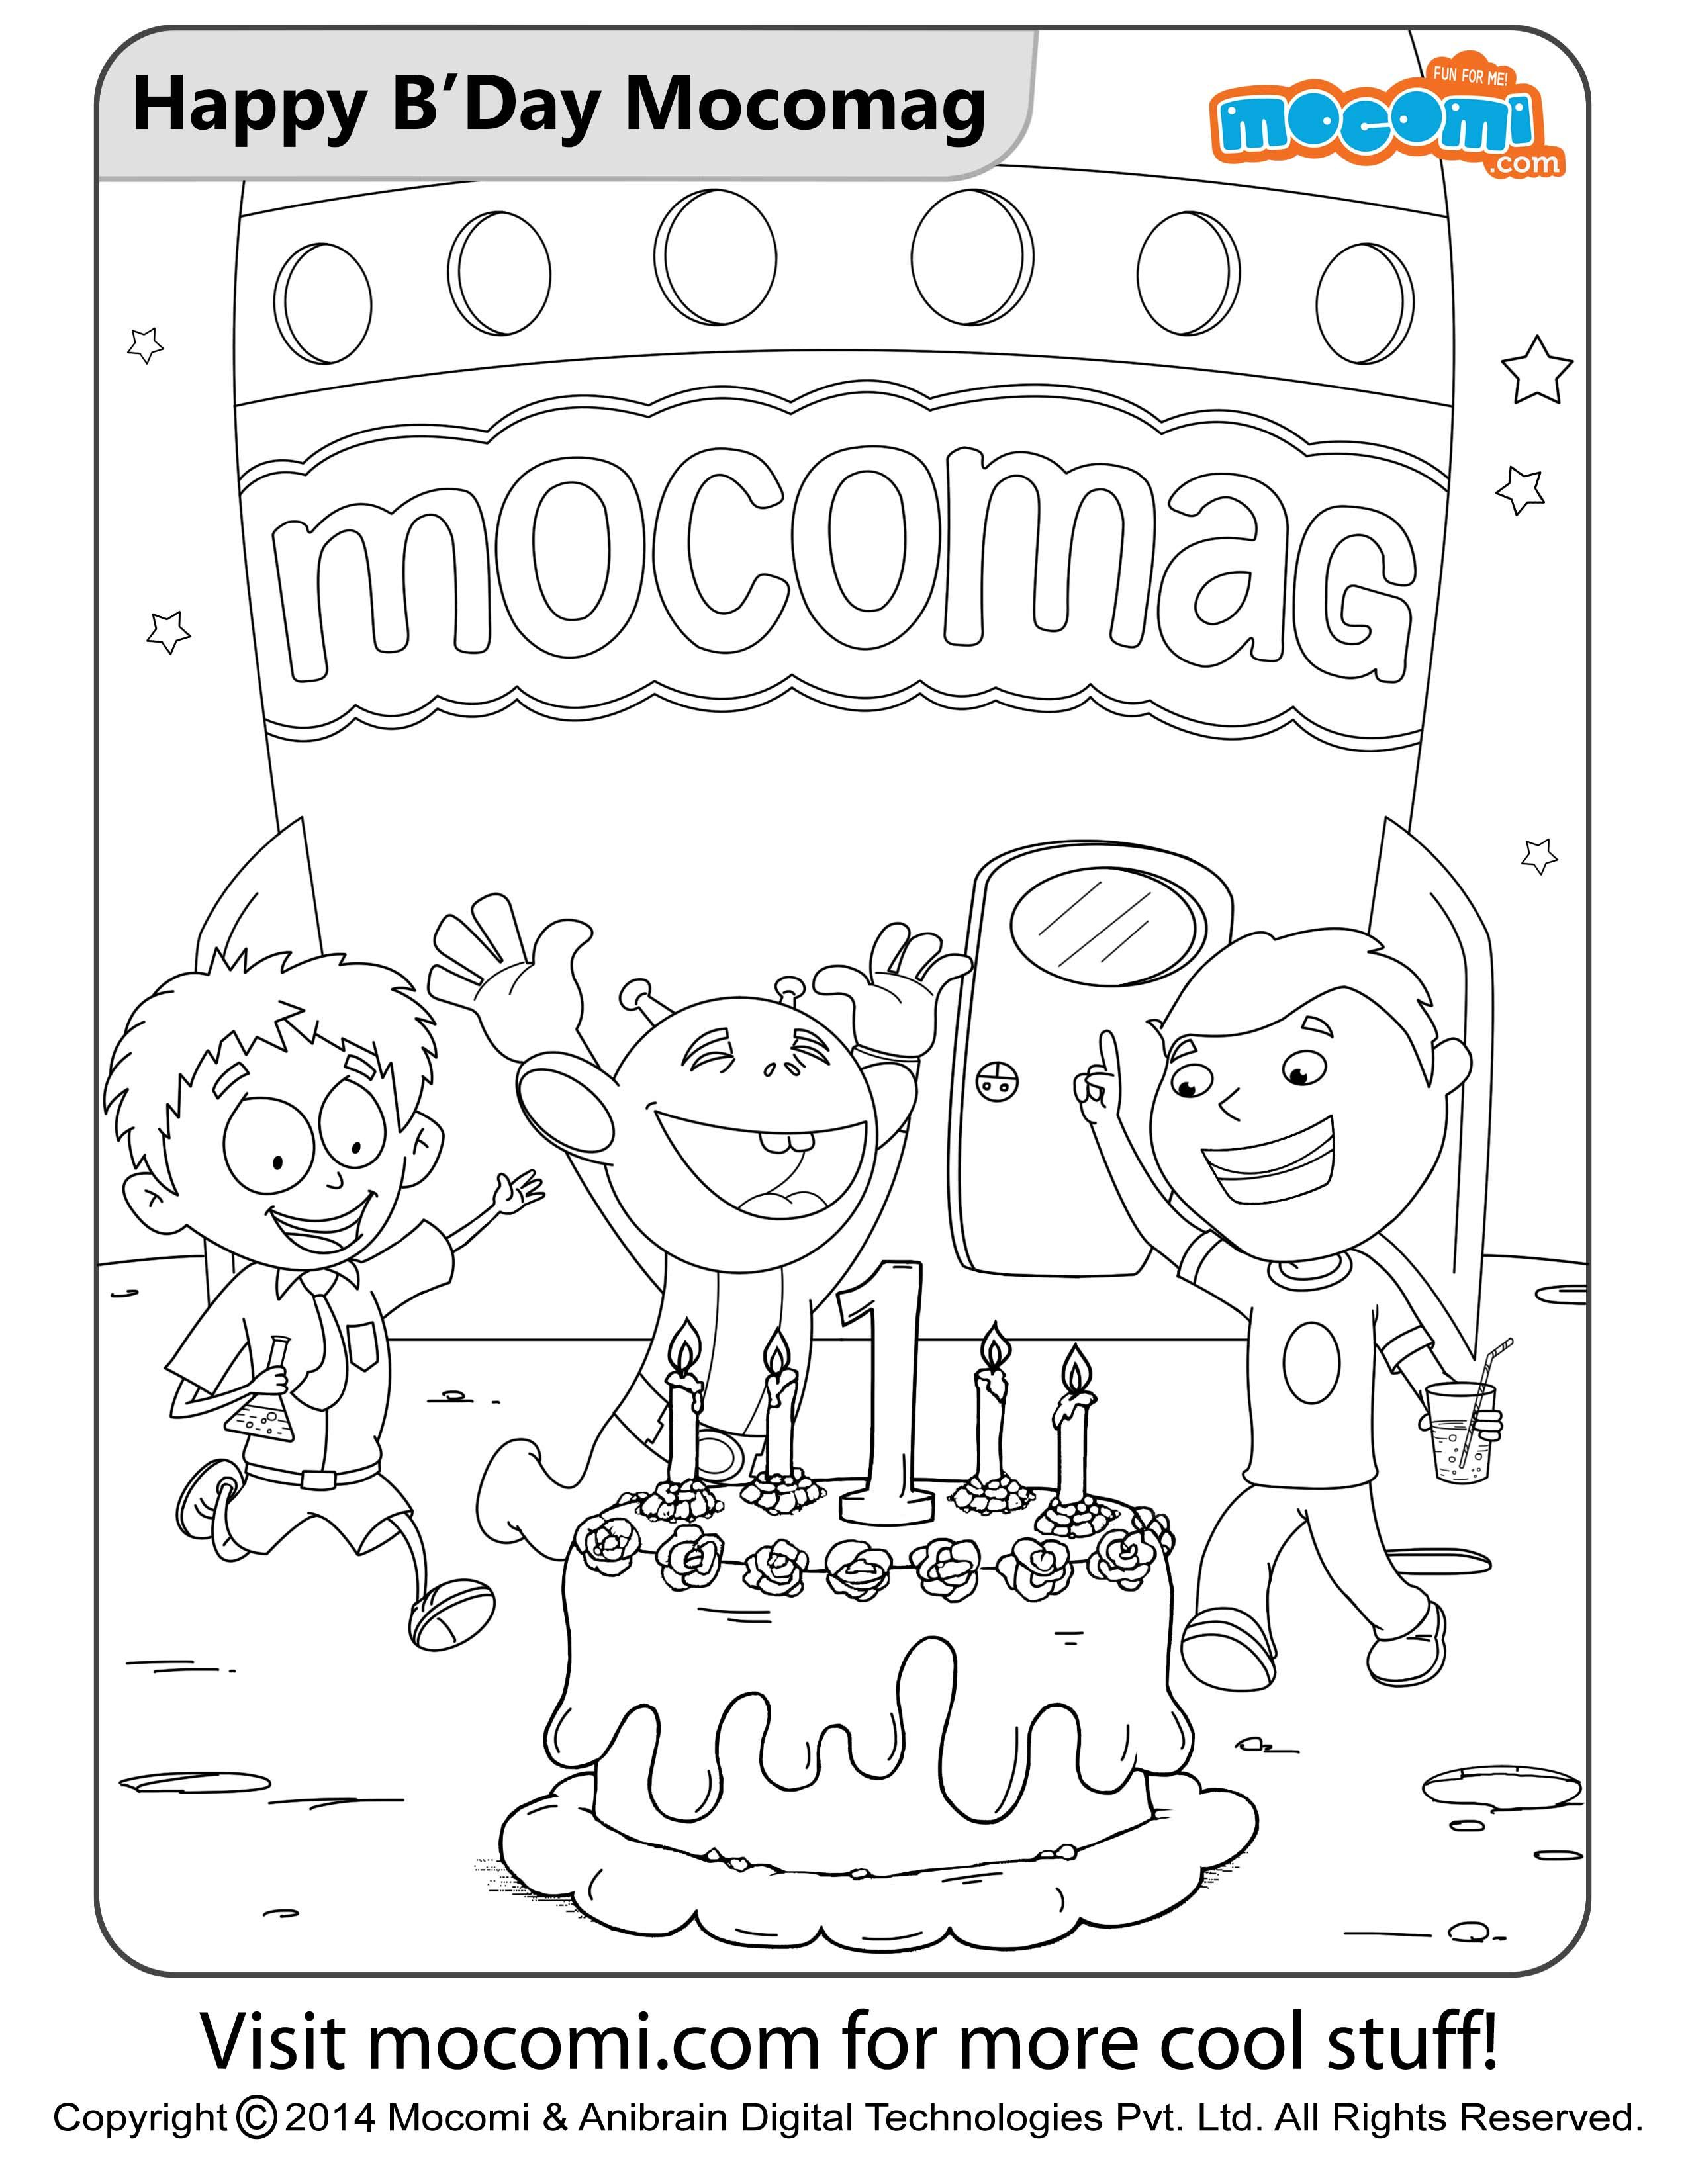 Happy Birthday Mocomag - Colouring Pages for Kids | Mocomi ...